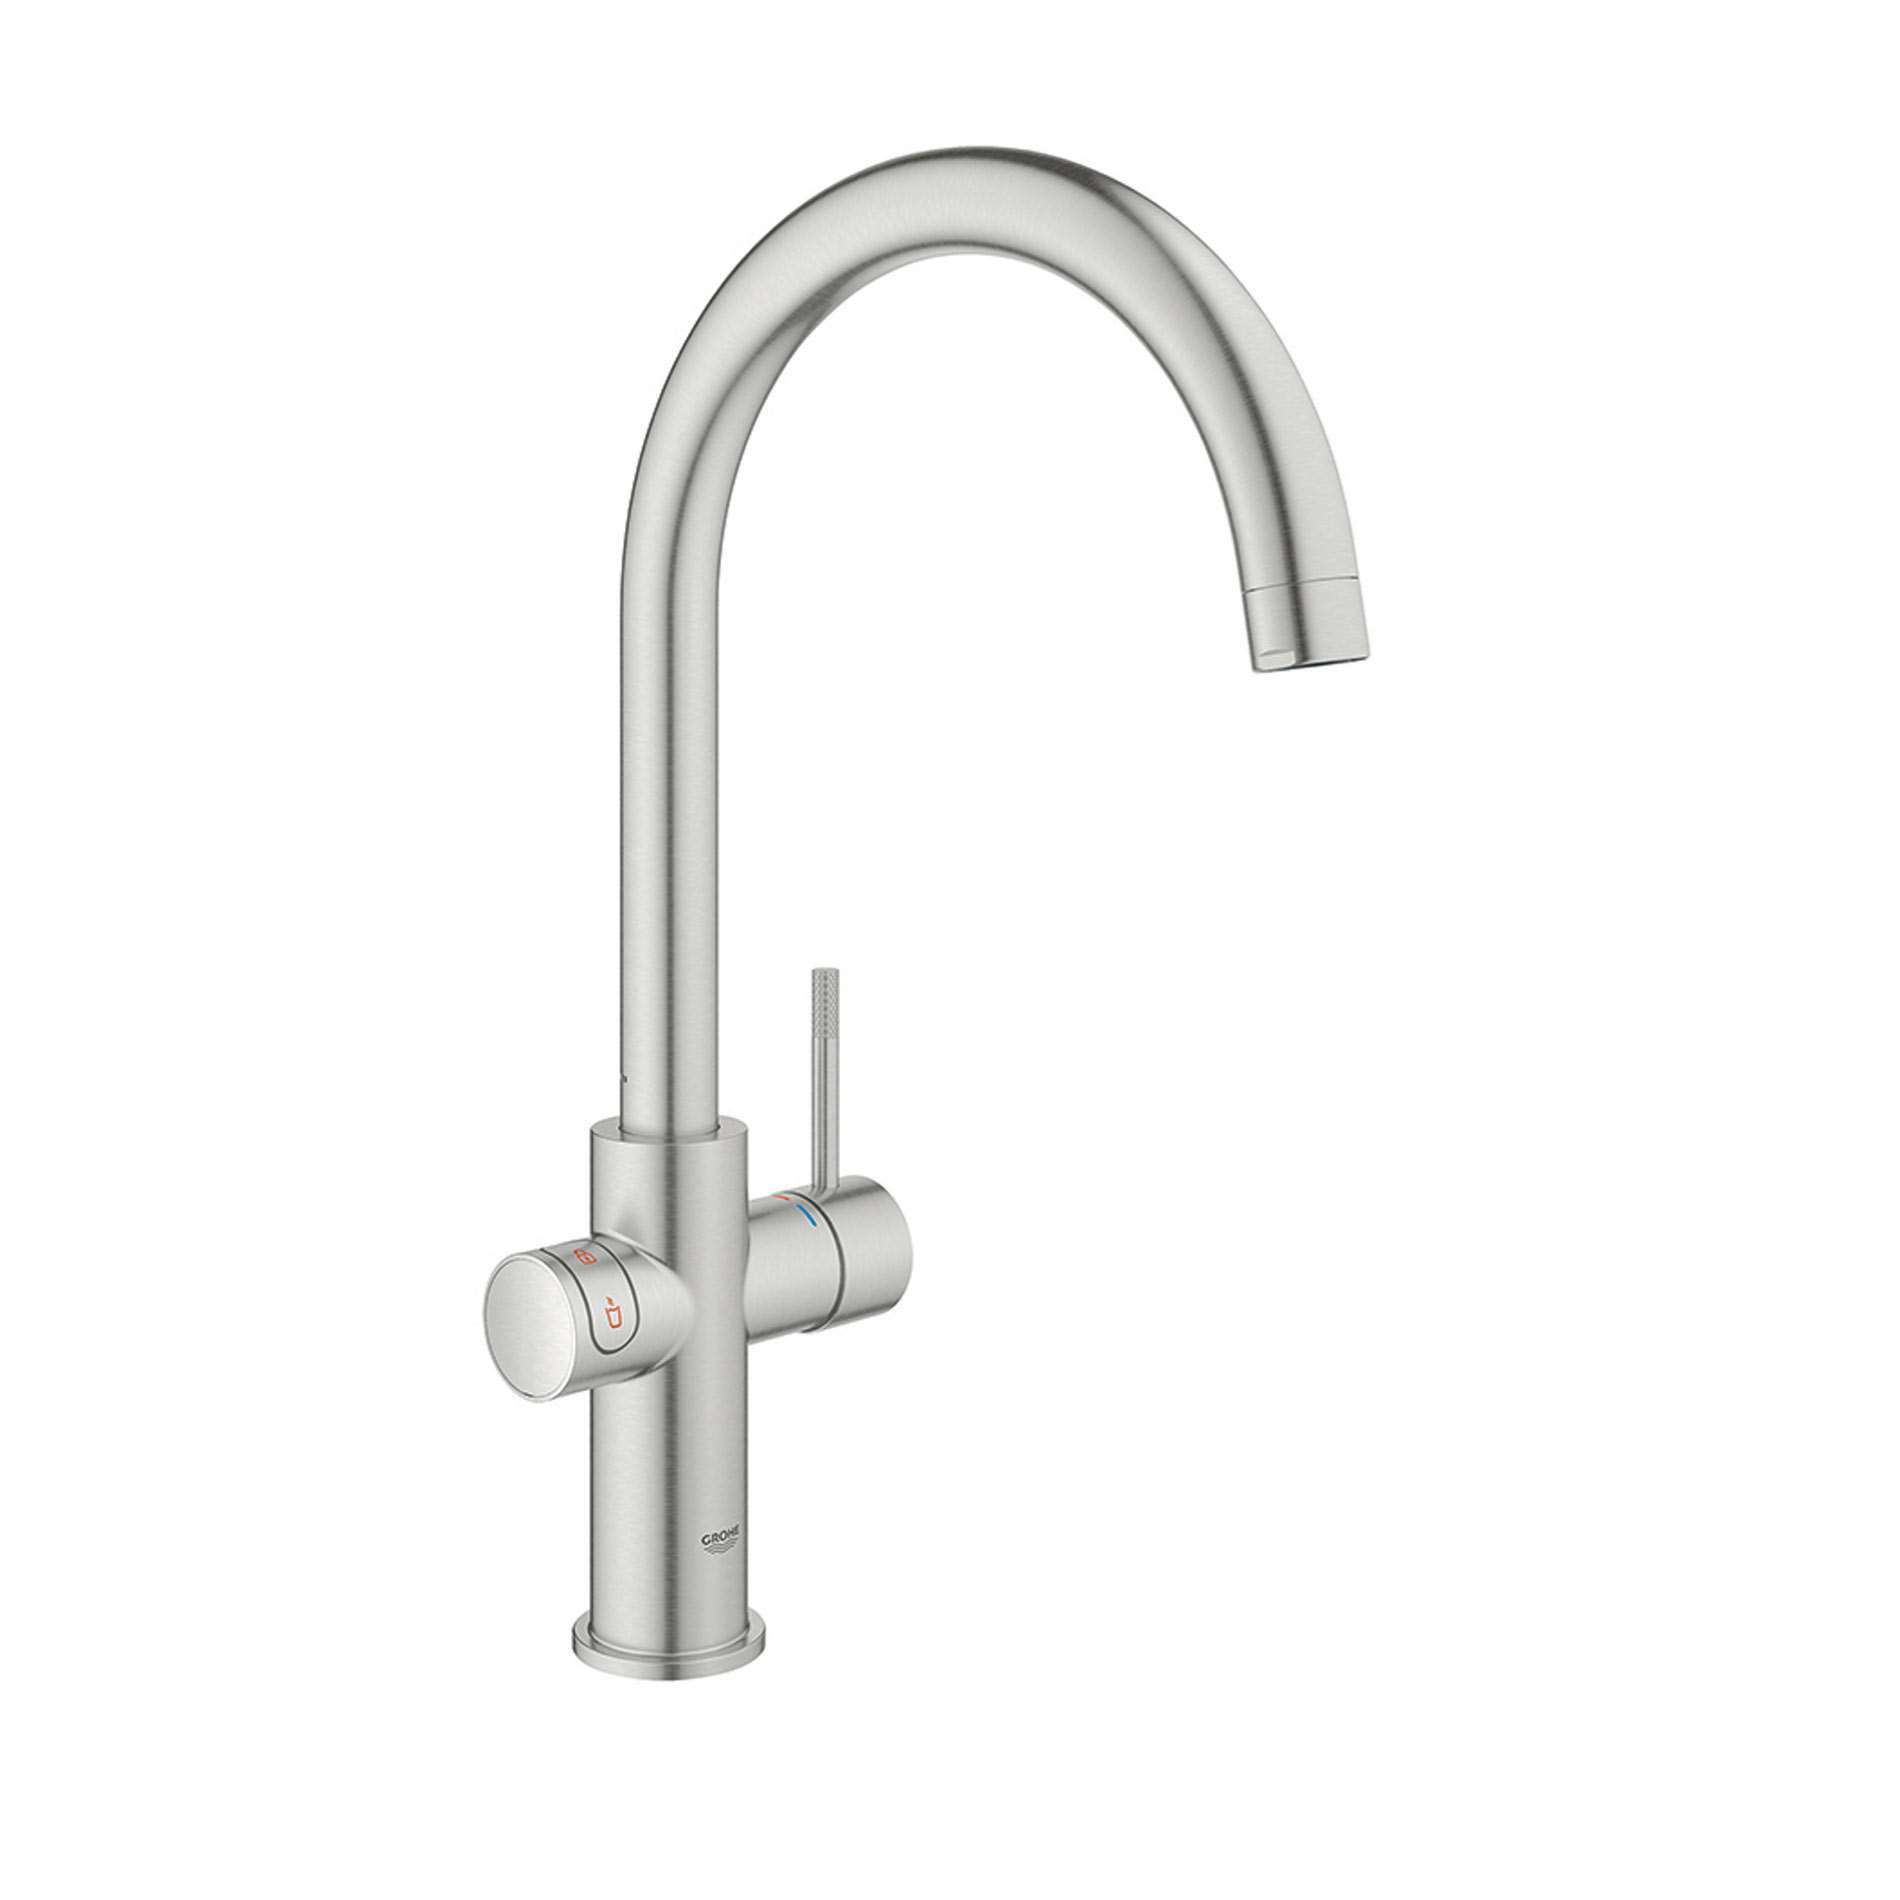 Unik Grohe: Red Duo 30058DC1 Brushed Steel Hot Water Tap - Kitchen YN17